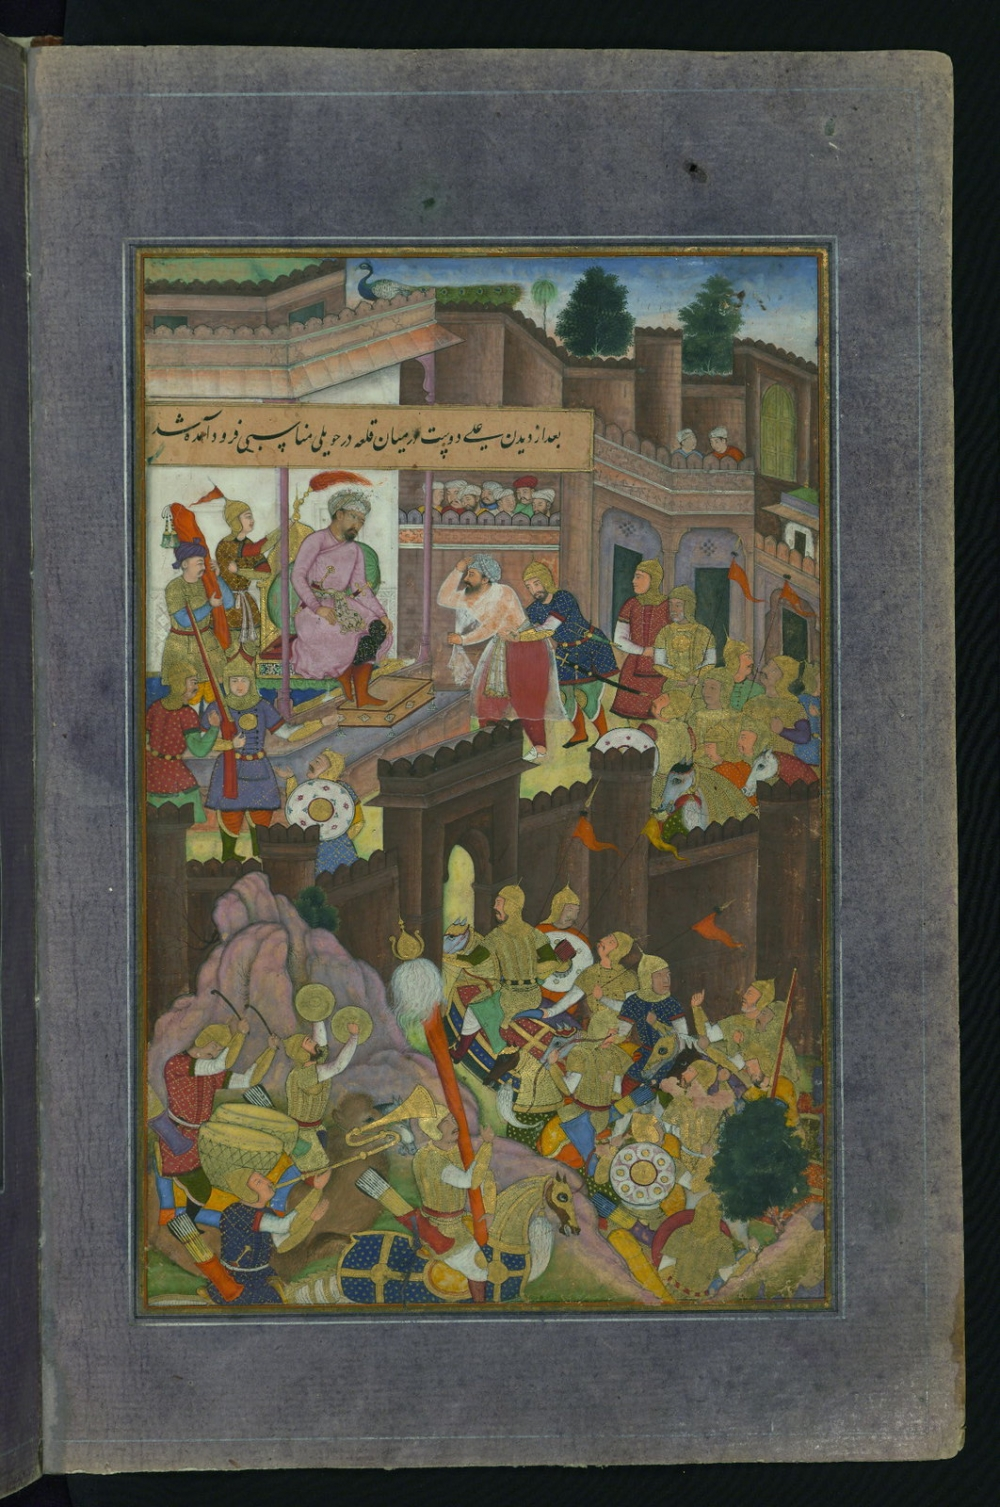 Having opened the gates of the Murghīnān fortress, ʿAlī Dūst Ṭaghāyī is paying homage to Babur, from Illuminated manuscript Baburnama, Courtesy: Walters Art Museum - Flickr